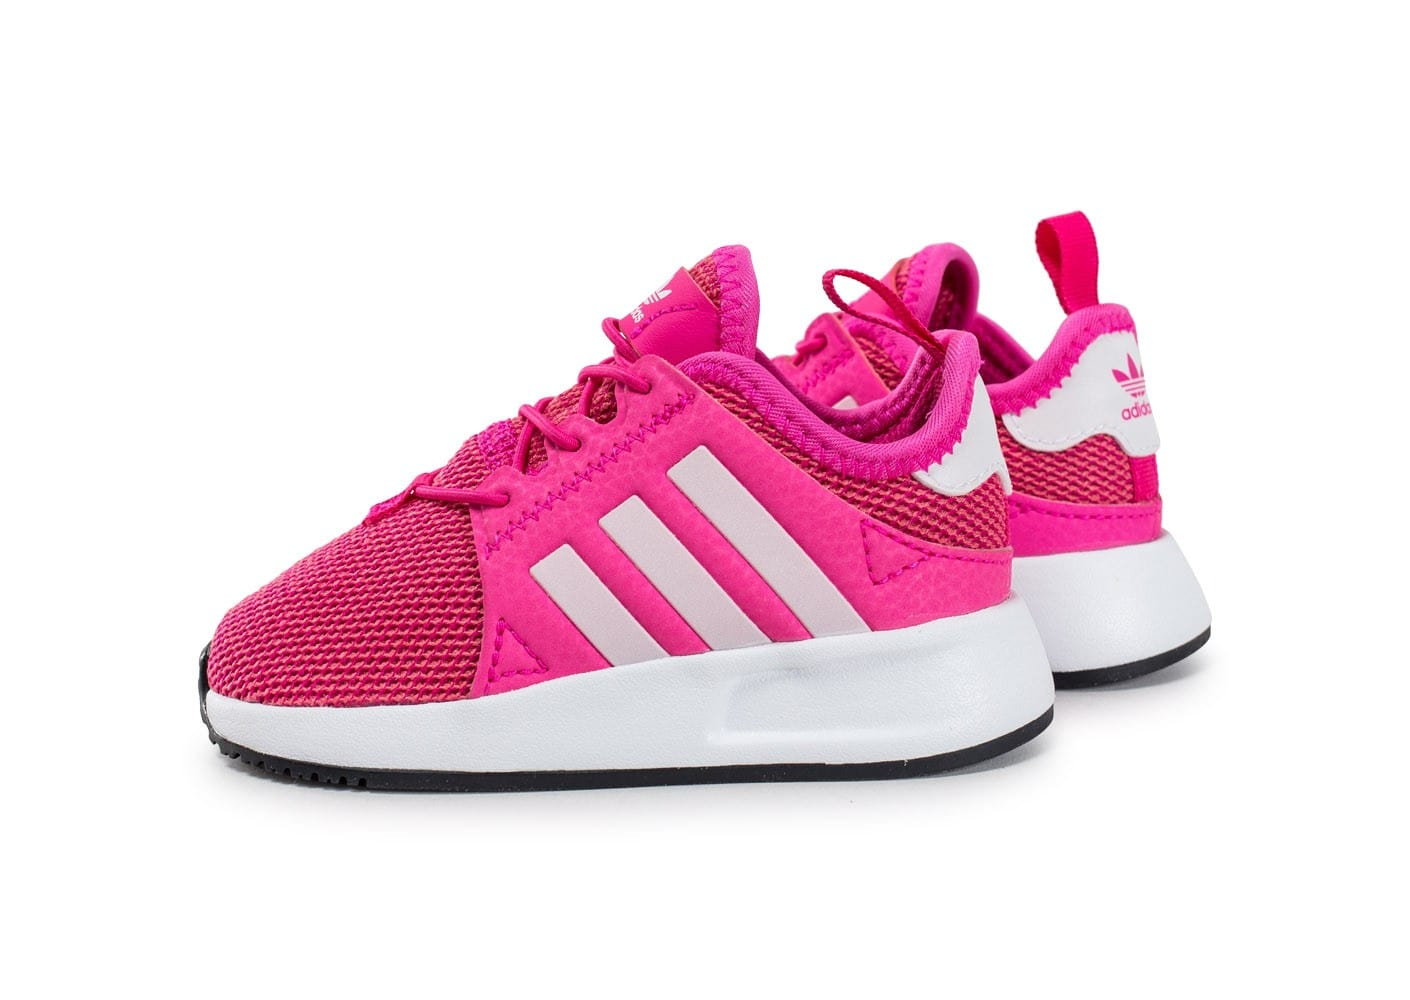 adidas Xplr Core Bébé Rose Rose 22 TfT9nojU3 slight